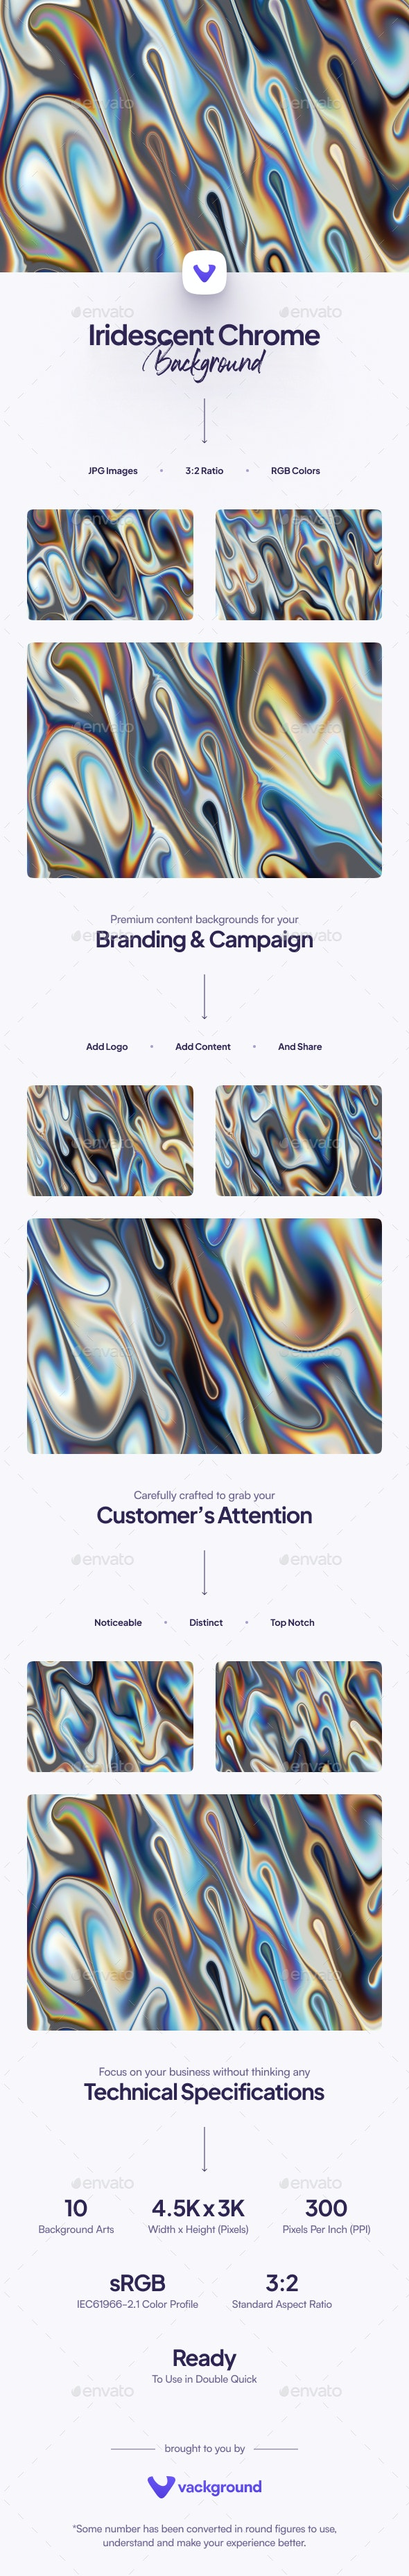 Iridescent Chrome Background - Abstract Backgrounds